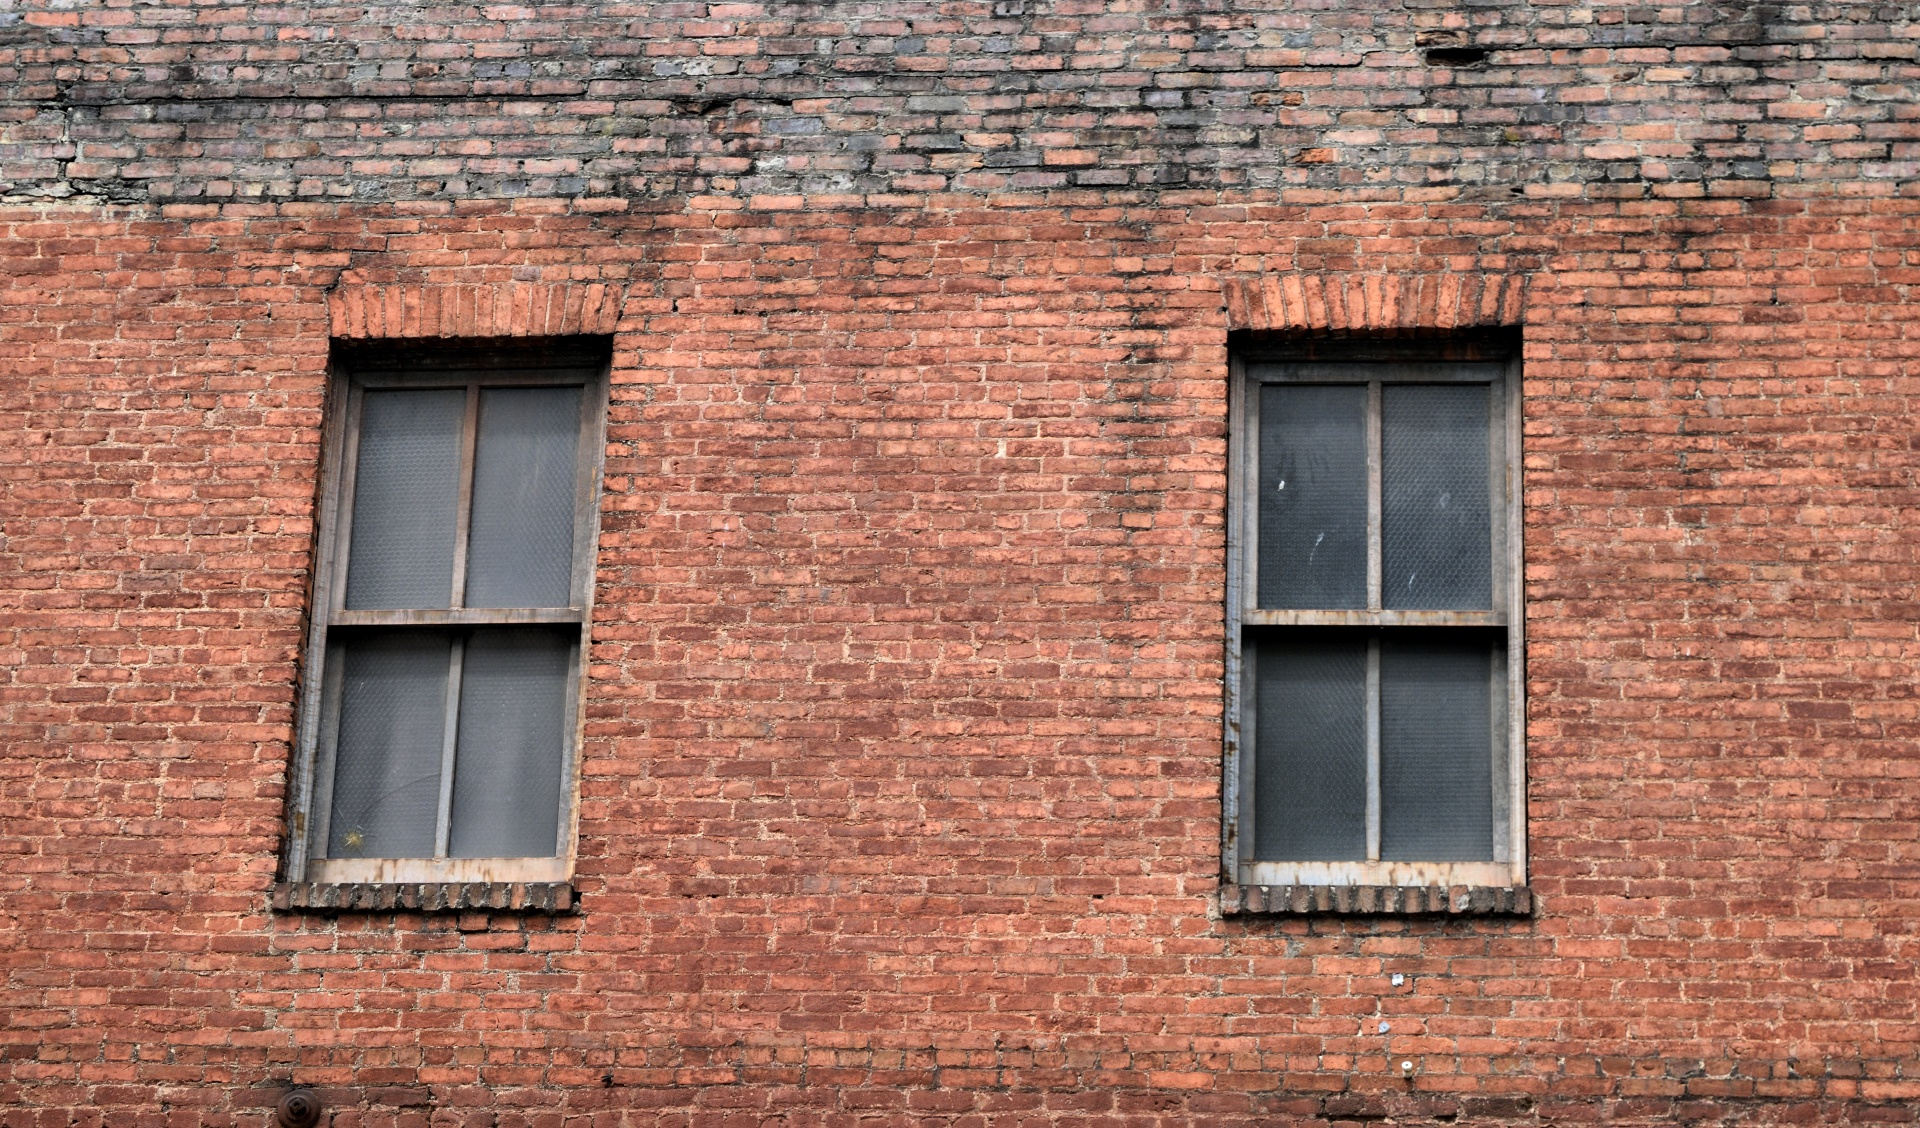 Prissy Windows Free Stock Photo Public Domain S Red Brick Wallpaper Lowes Red Brick Wall Ideas Windows Red Brick Wall Red Brick Wall houzz-02 Red Brick Wall